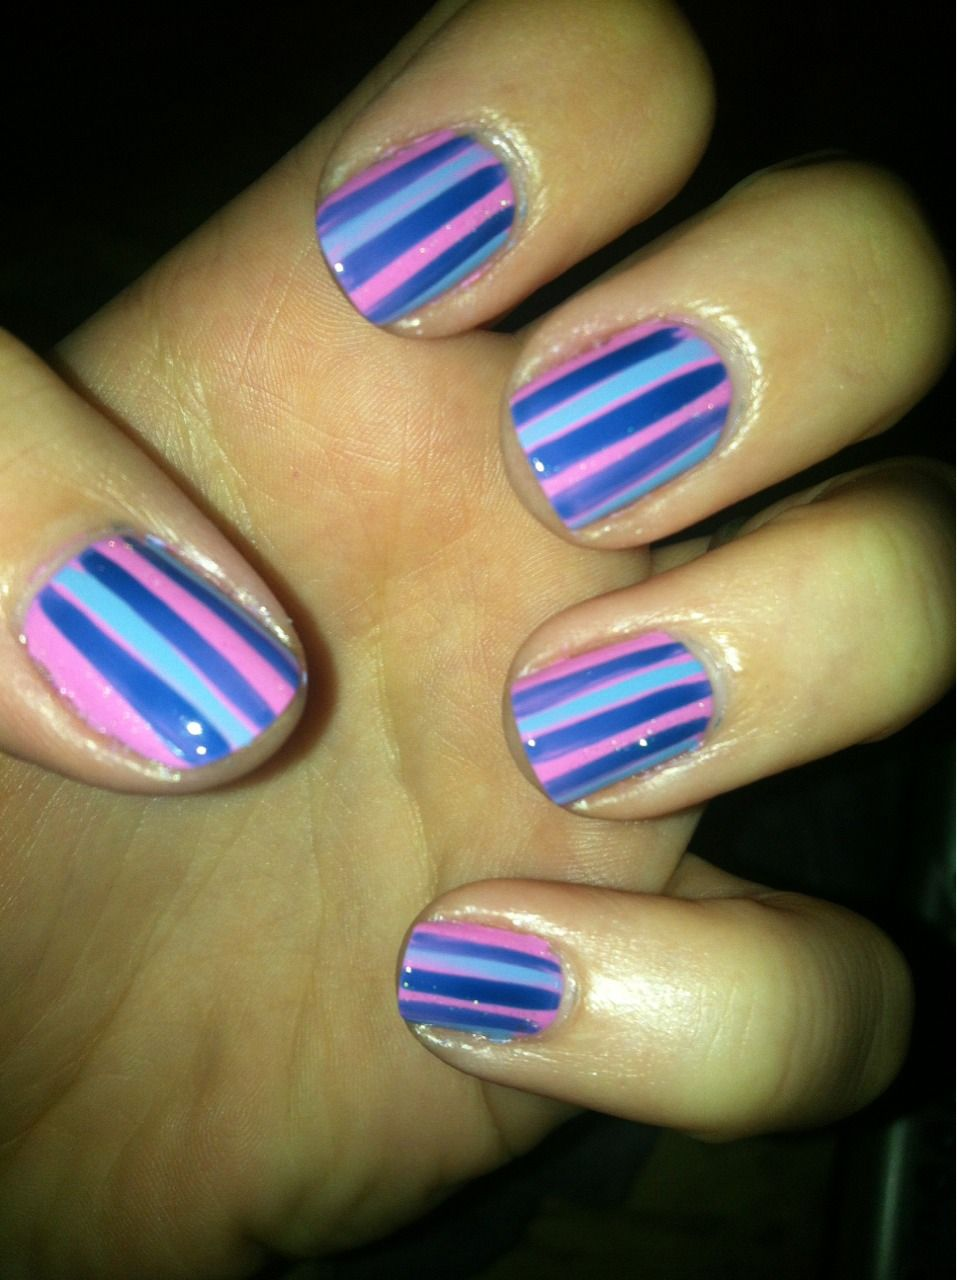 Purple, blue and pink striped nails | Nails | Pinterest